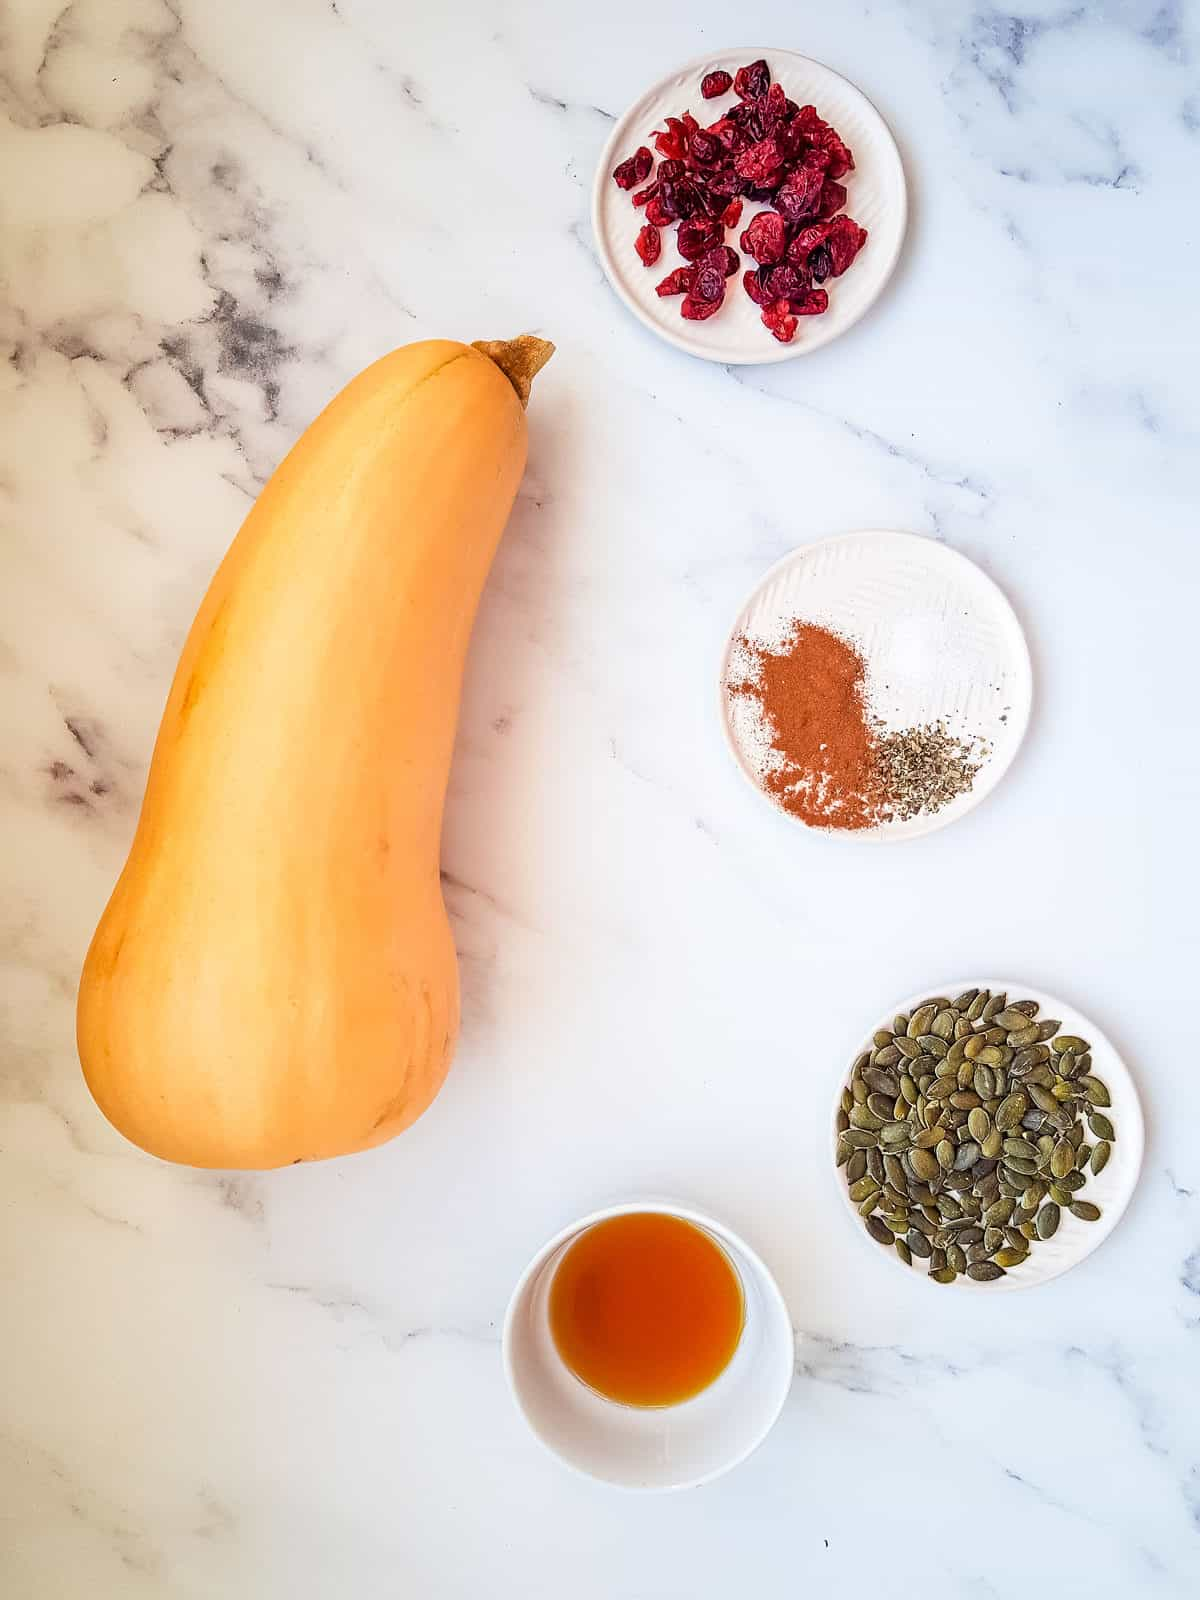 The ingredients for air fryer butternut squash laid out on a table.